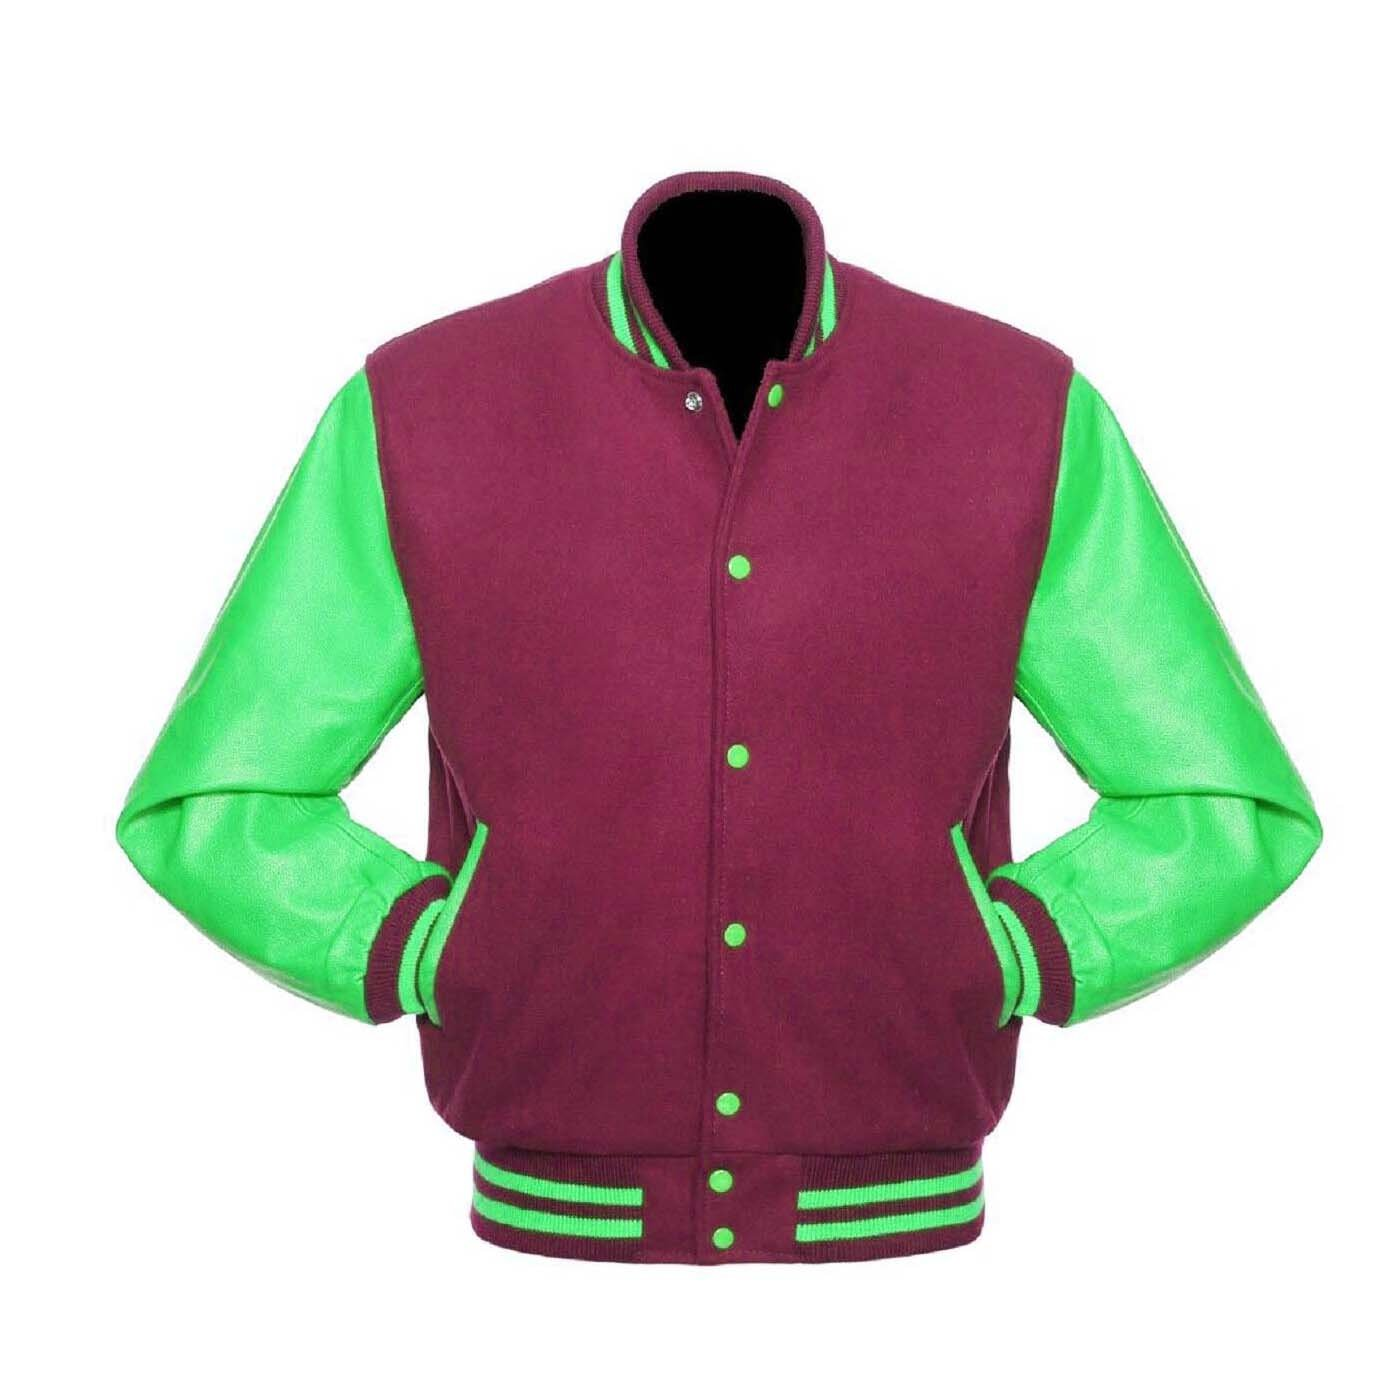 New DC Letterman Baseball Collage Maroon wool Green leather  sleeves varsity jacket size XL